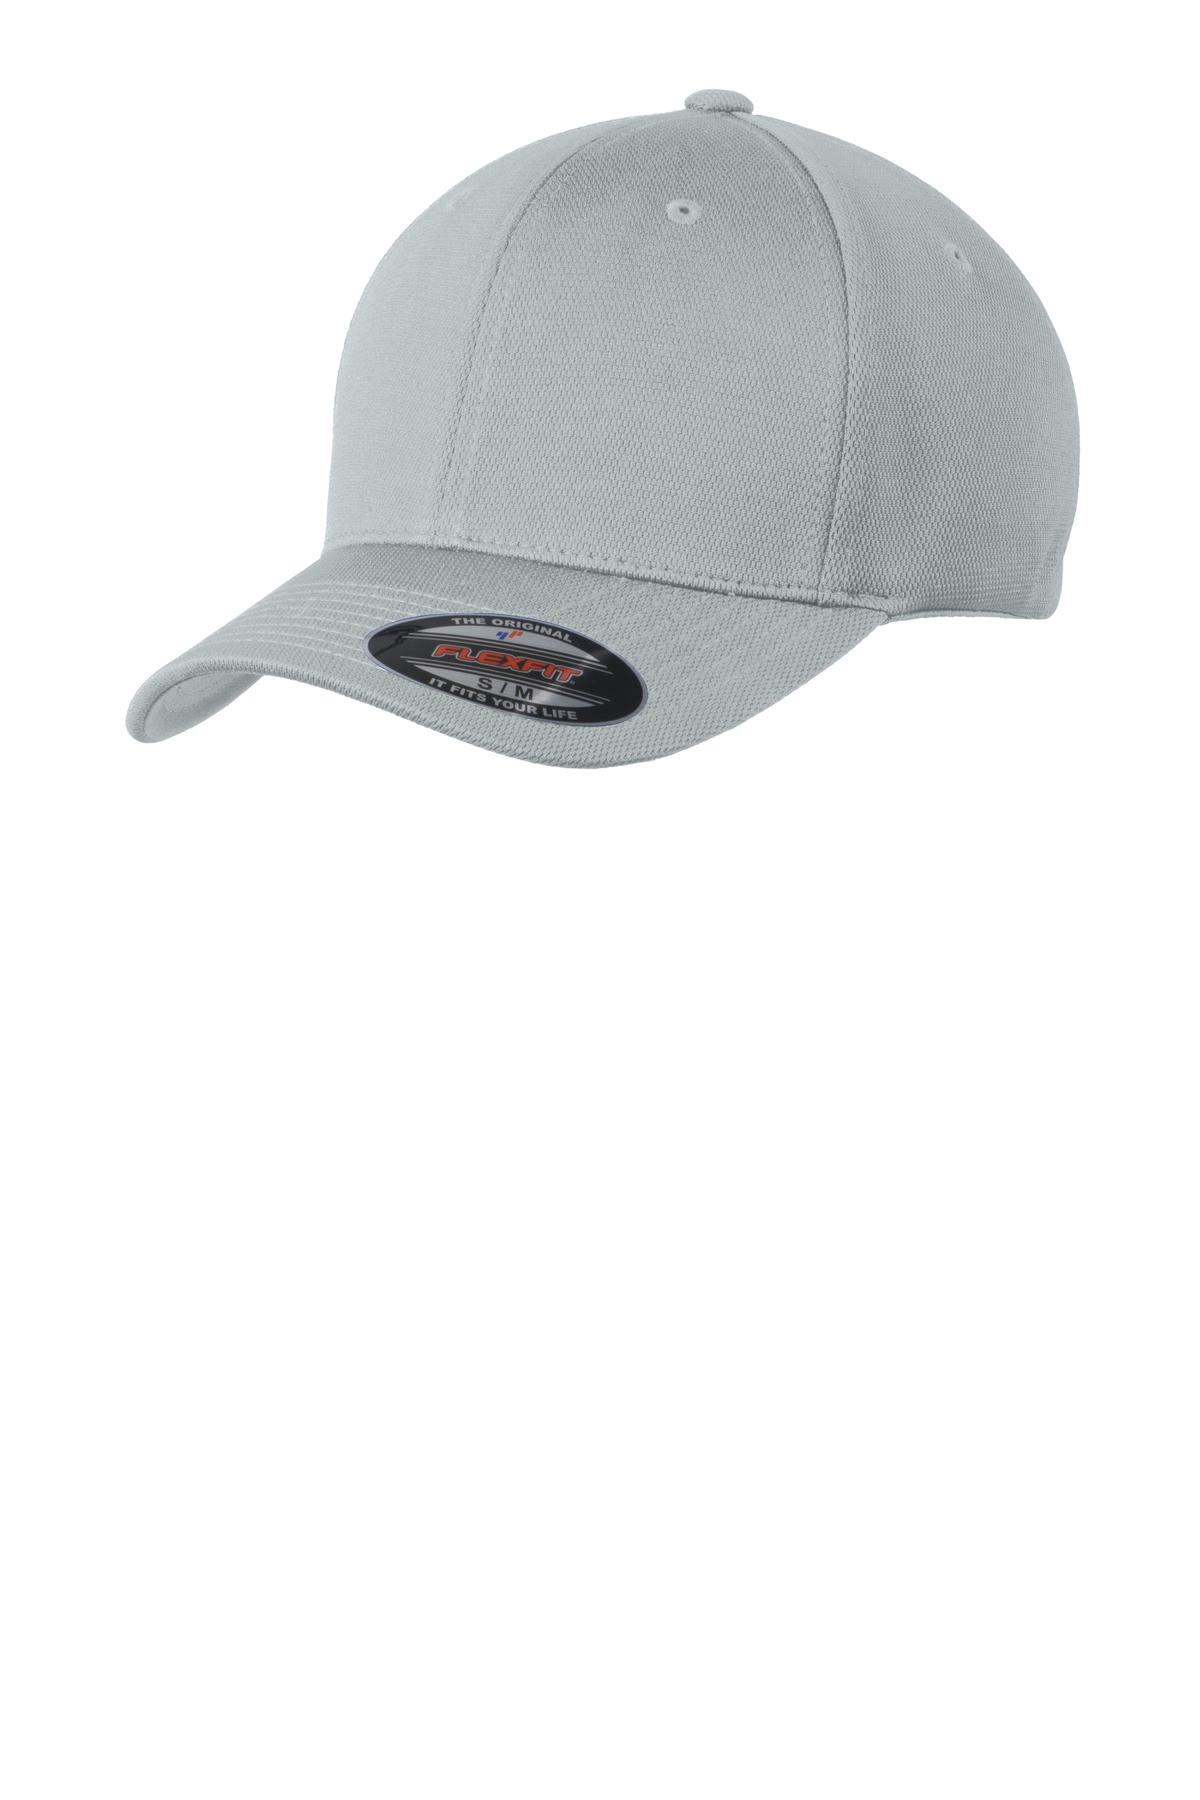 Sport-Tek ®  Flexfit ®  Cool & Dry Poly Block Mesh Cap. STC22 - Grey Heather